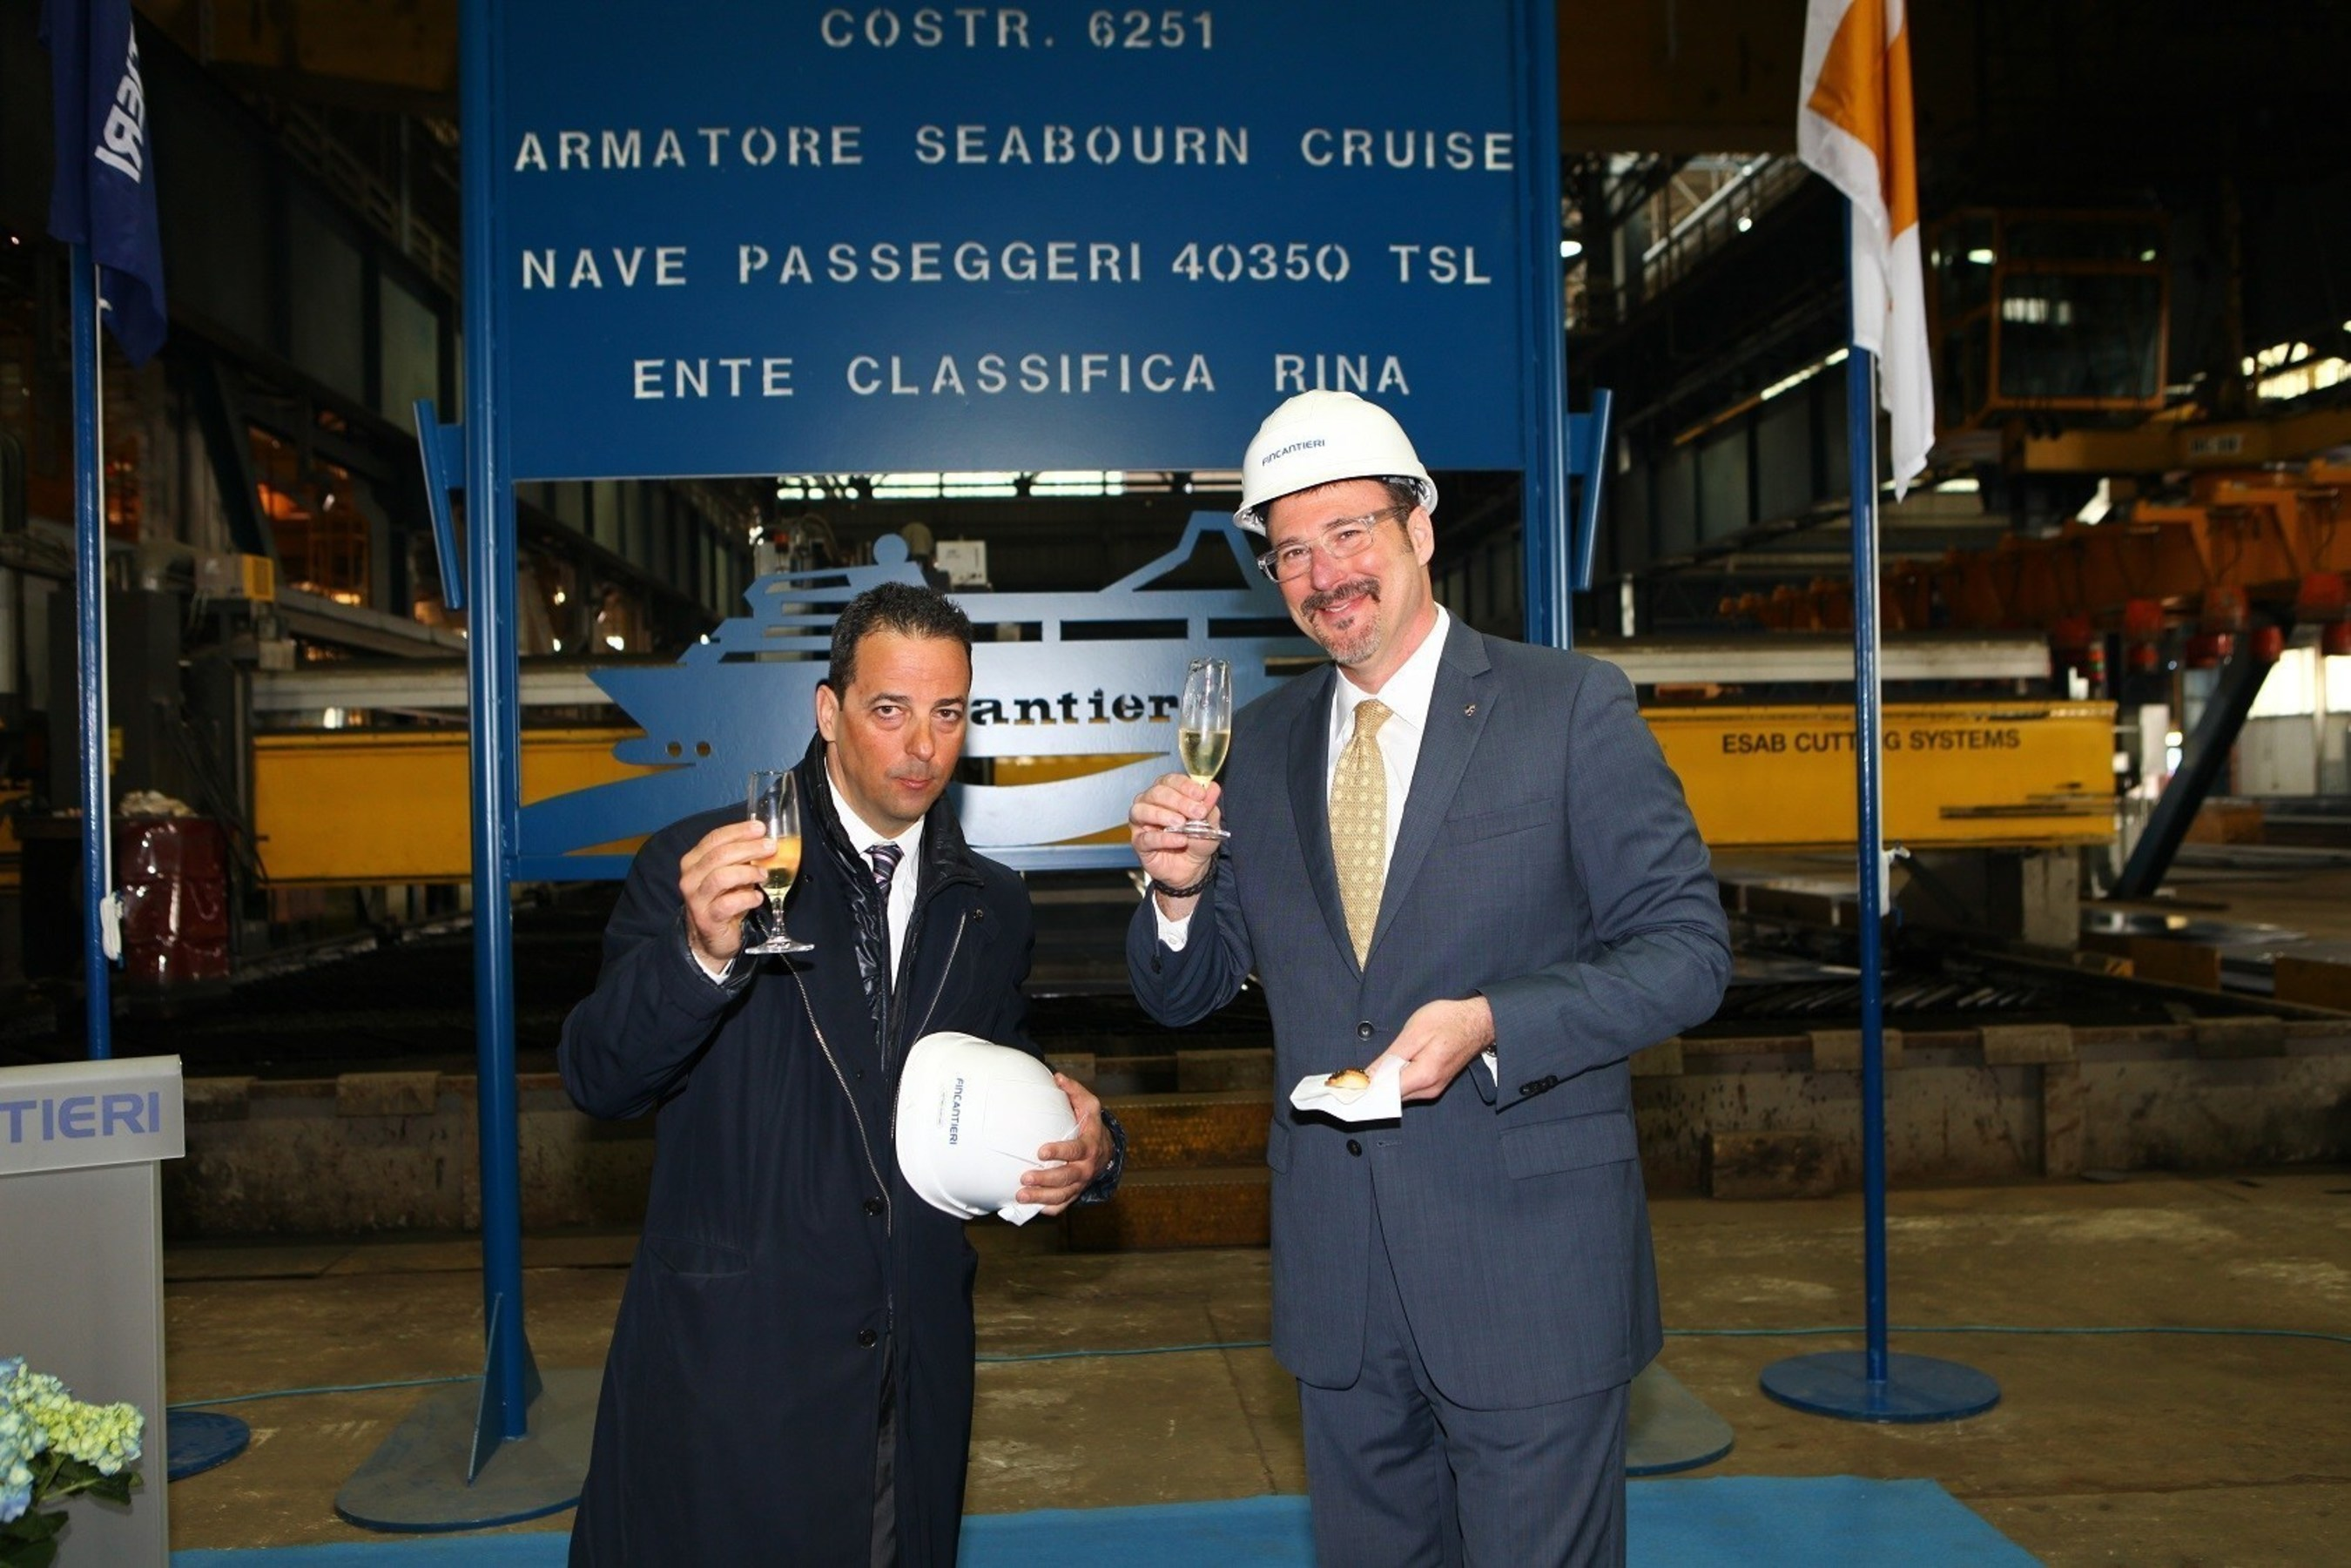 Antonio Quintano, Director of Fincantieri's Marghera shipyard, and Richard Meadows, Seabourn President, toast to the first steel cut for the line's newest ship, Seabourn Encore.